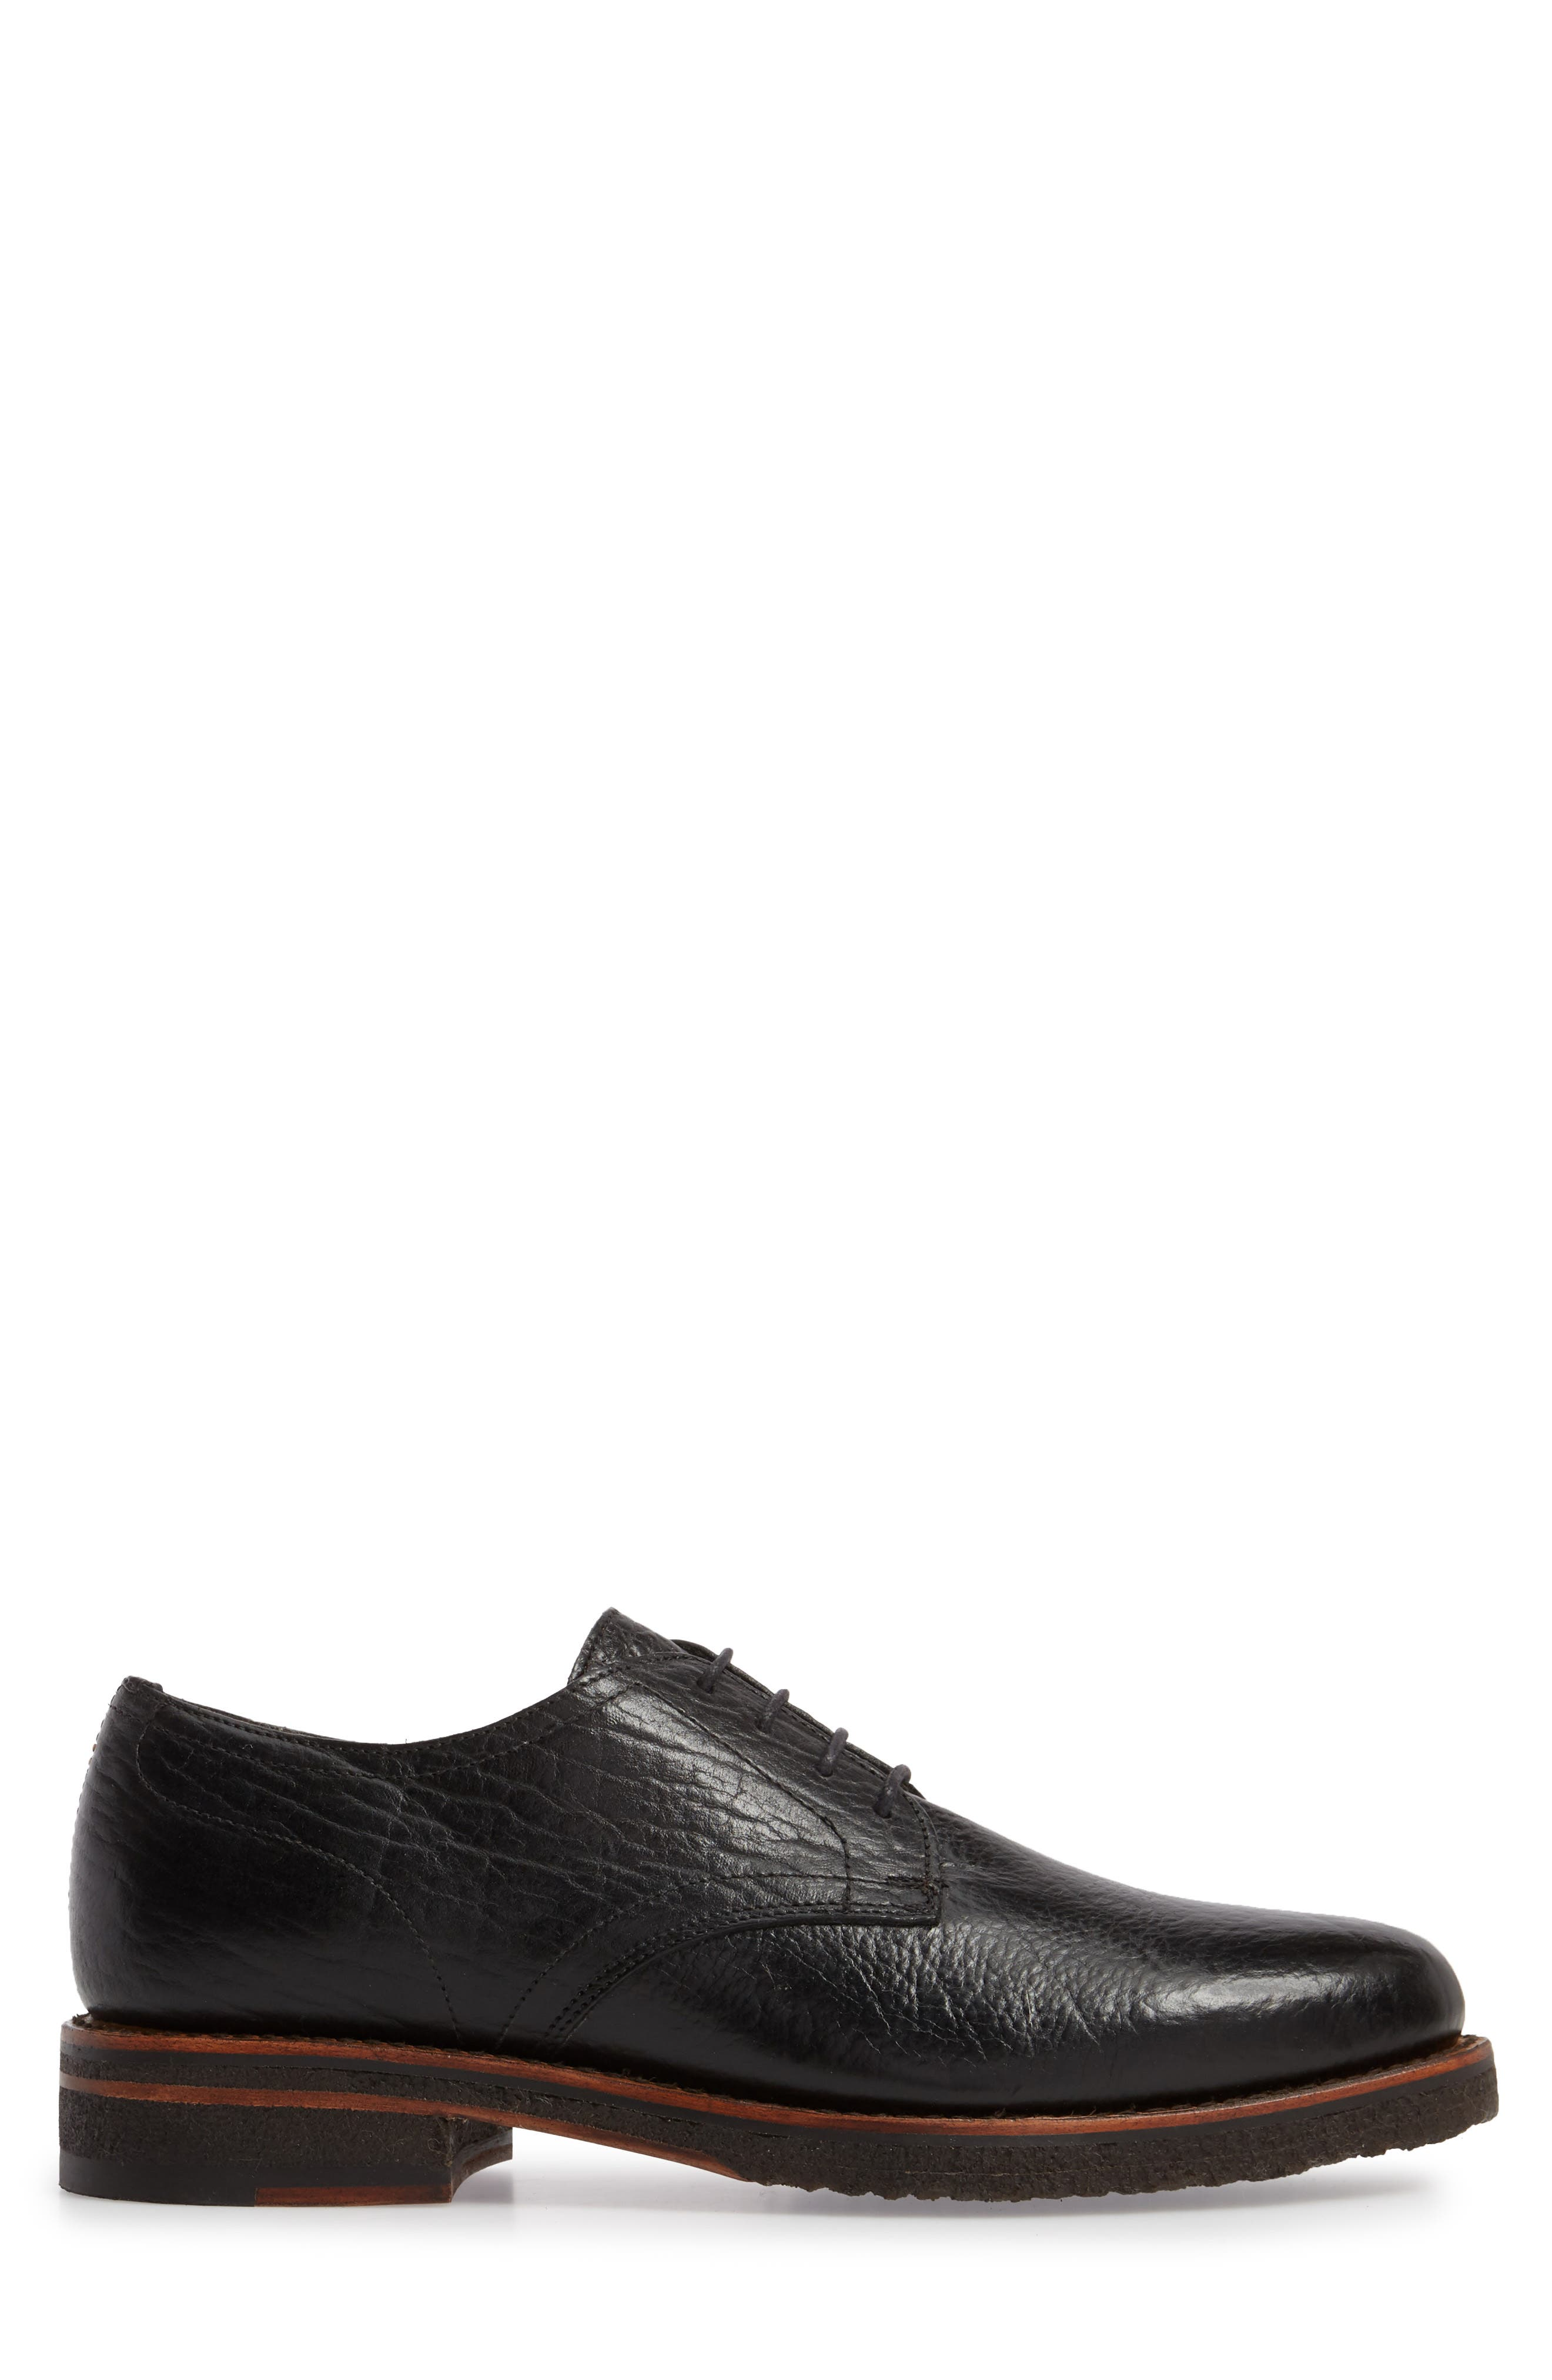 Two24 by Ariat Hawthorne Plain Toe Derby,                             Alternate thumbnail 3, color,                             Black Leather